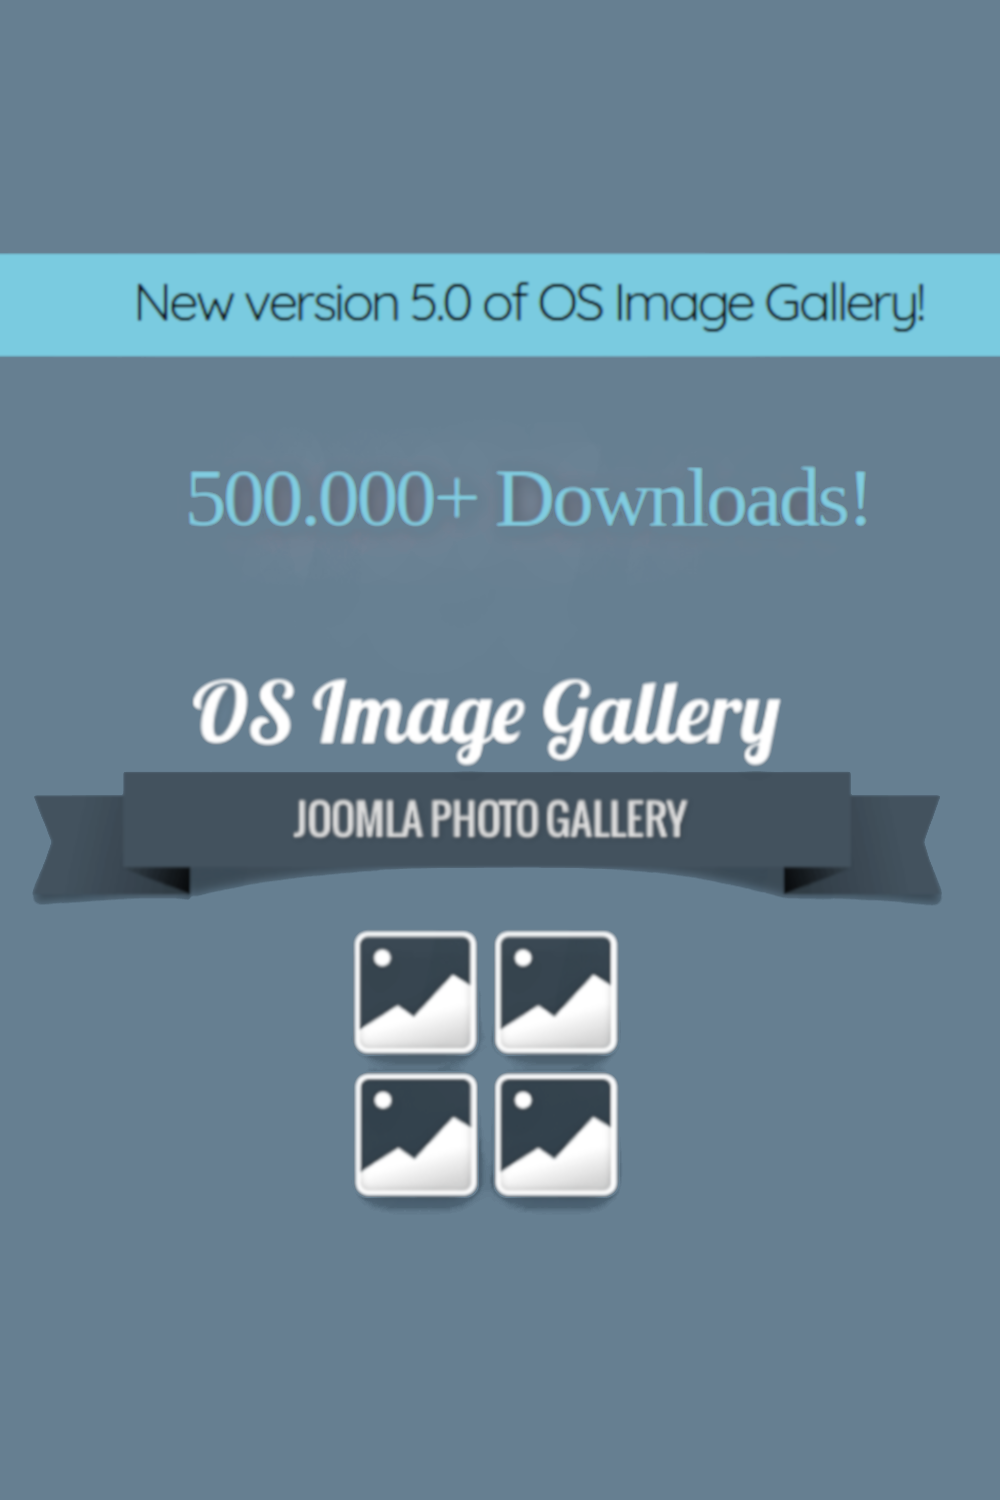 OS Image Gallery is responsive Joomla extension for